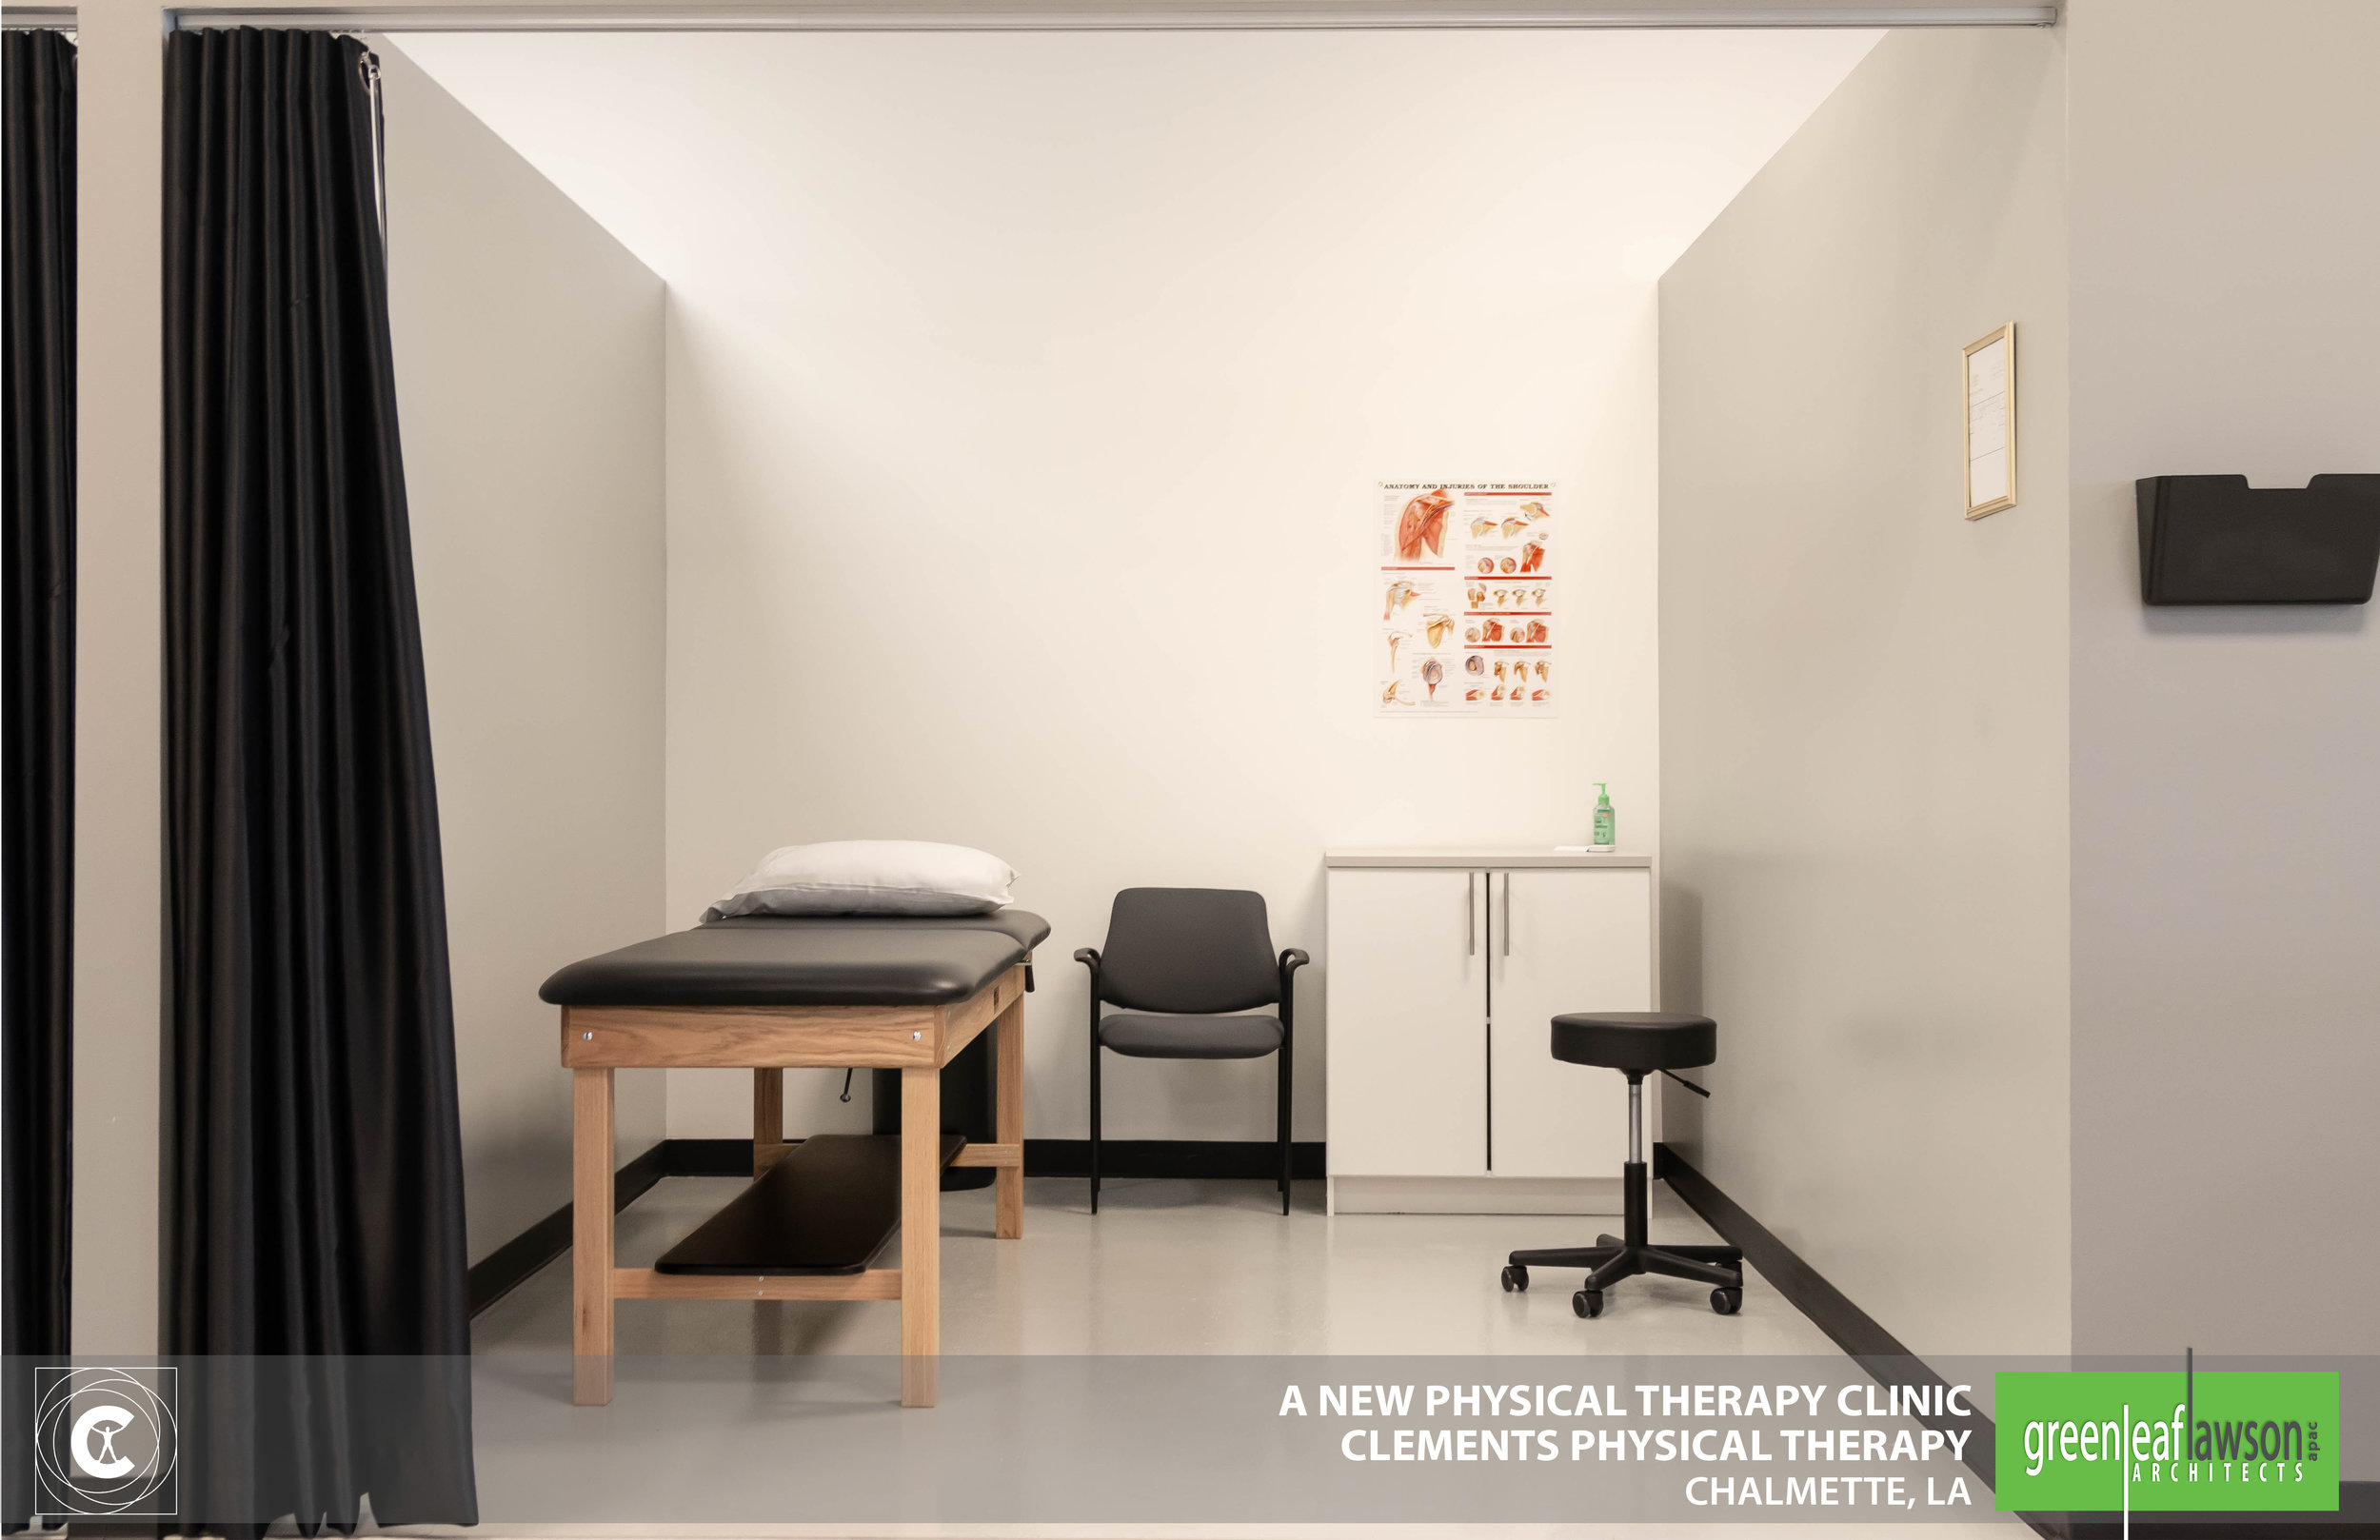 Clements-Physical-Therapy-Greenleaf-Lawson-Architects-4.jpg